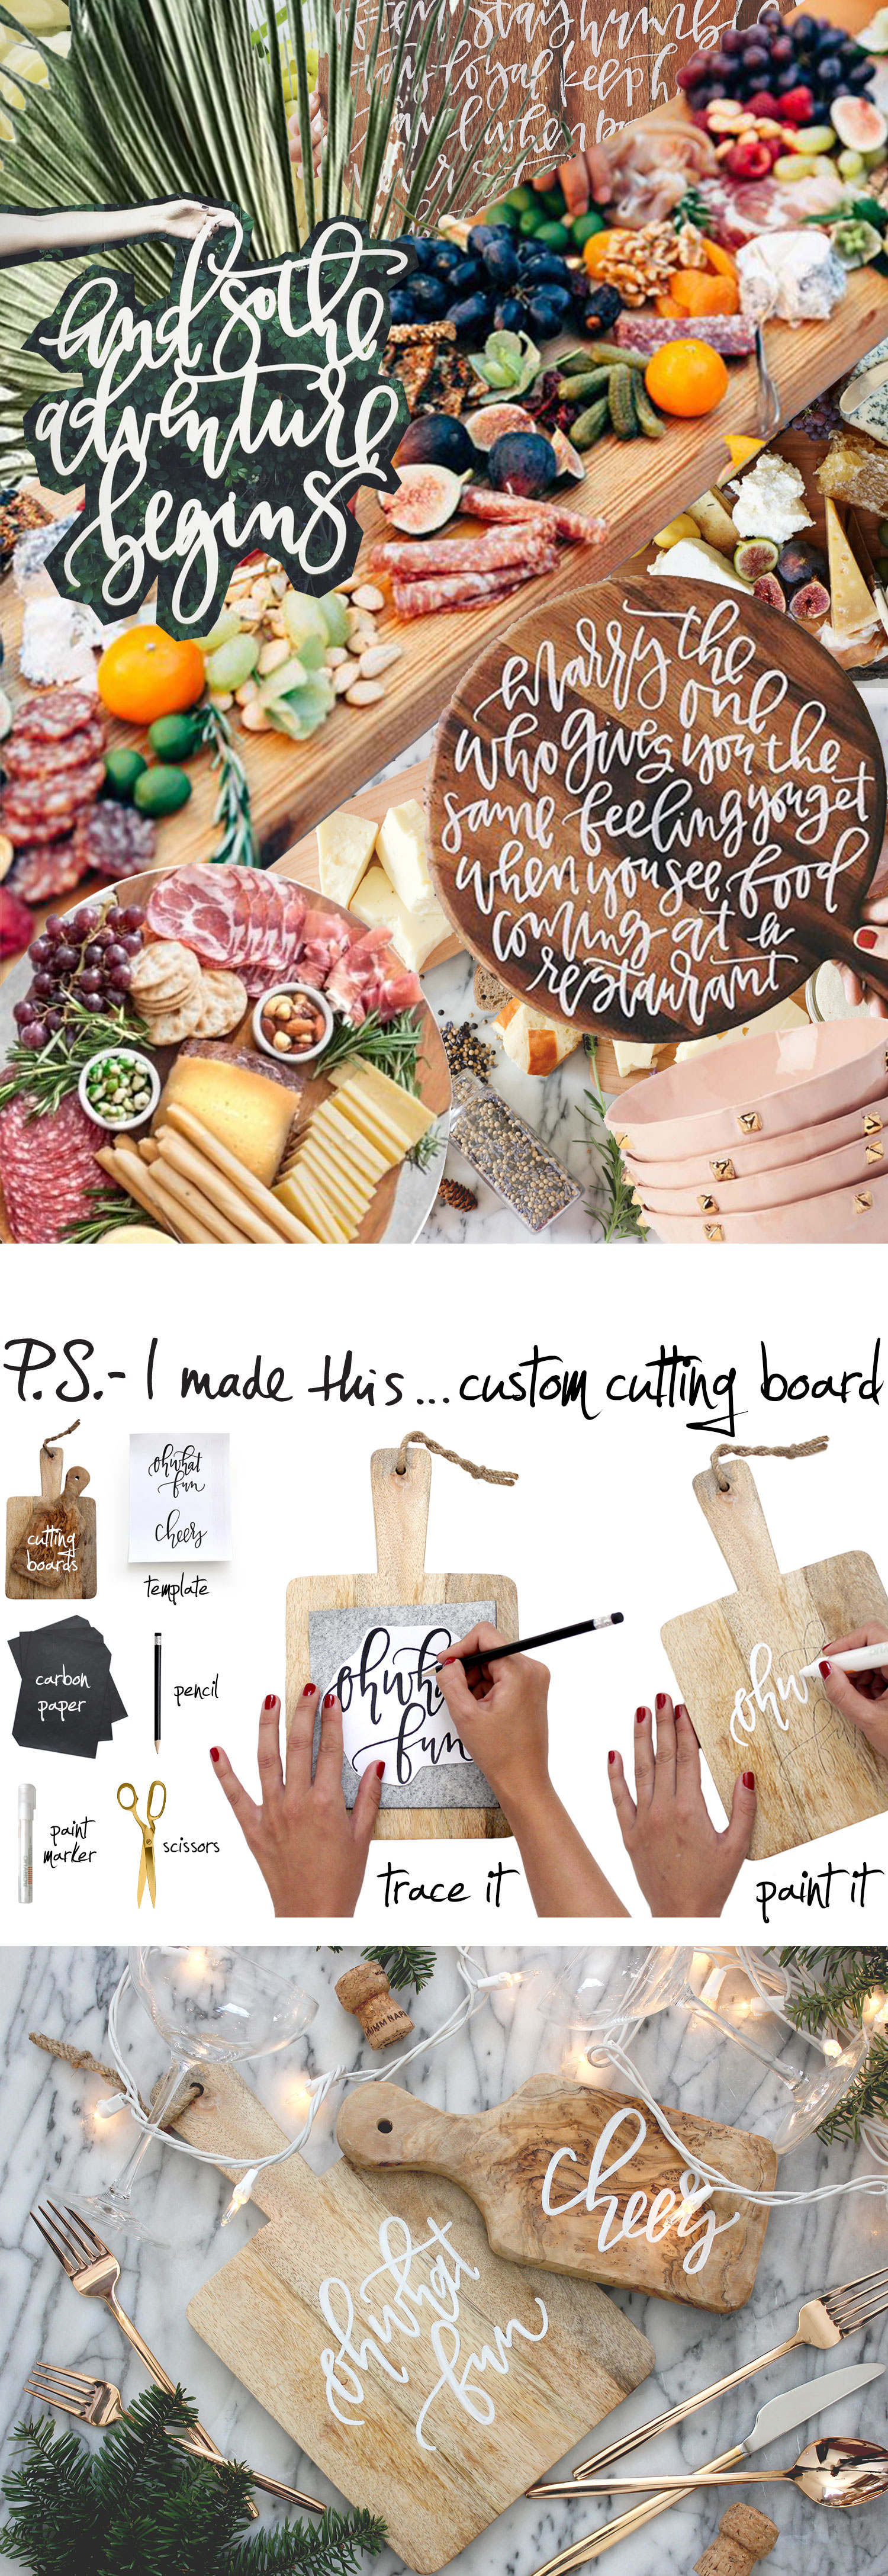 12.21.15_Fabuous-Fete_Custom-Cutting-Board4